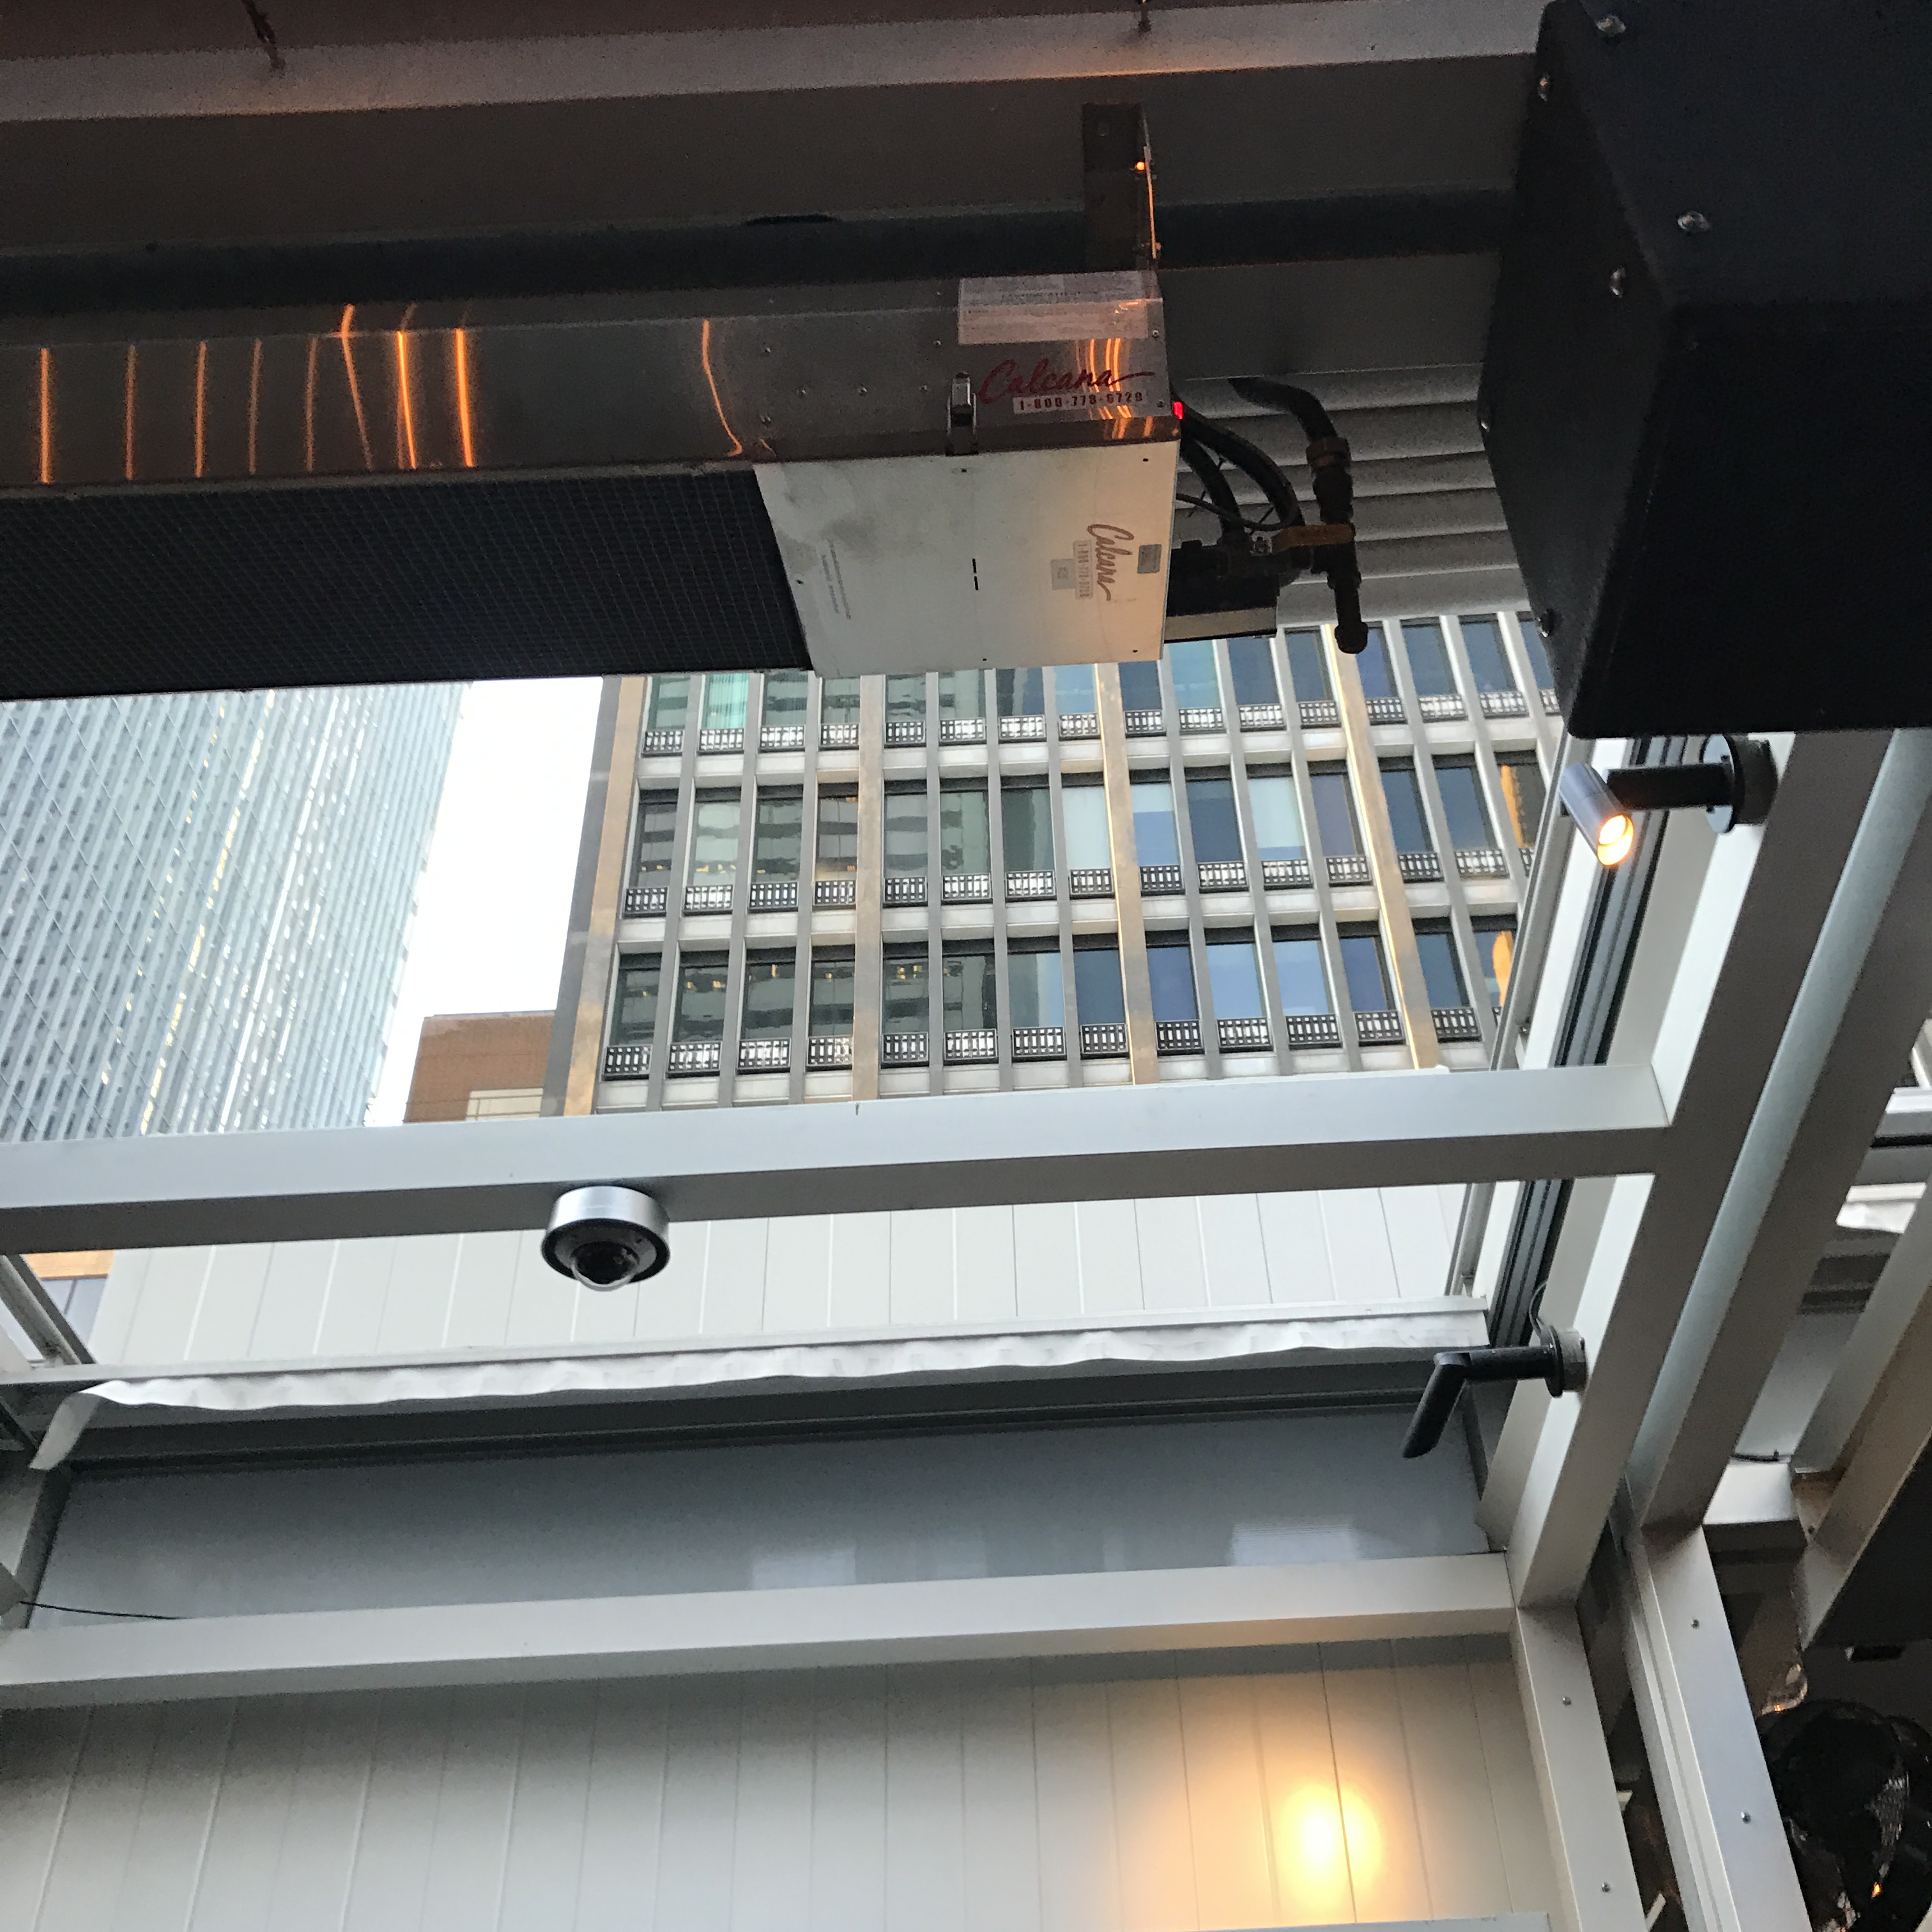 Cactus Club Cafe at First Canadian Place (FCP)